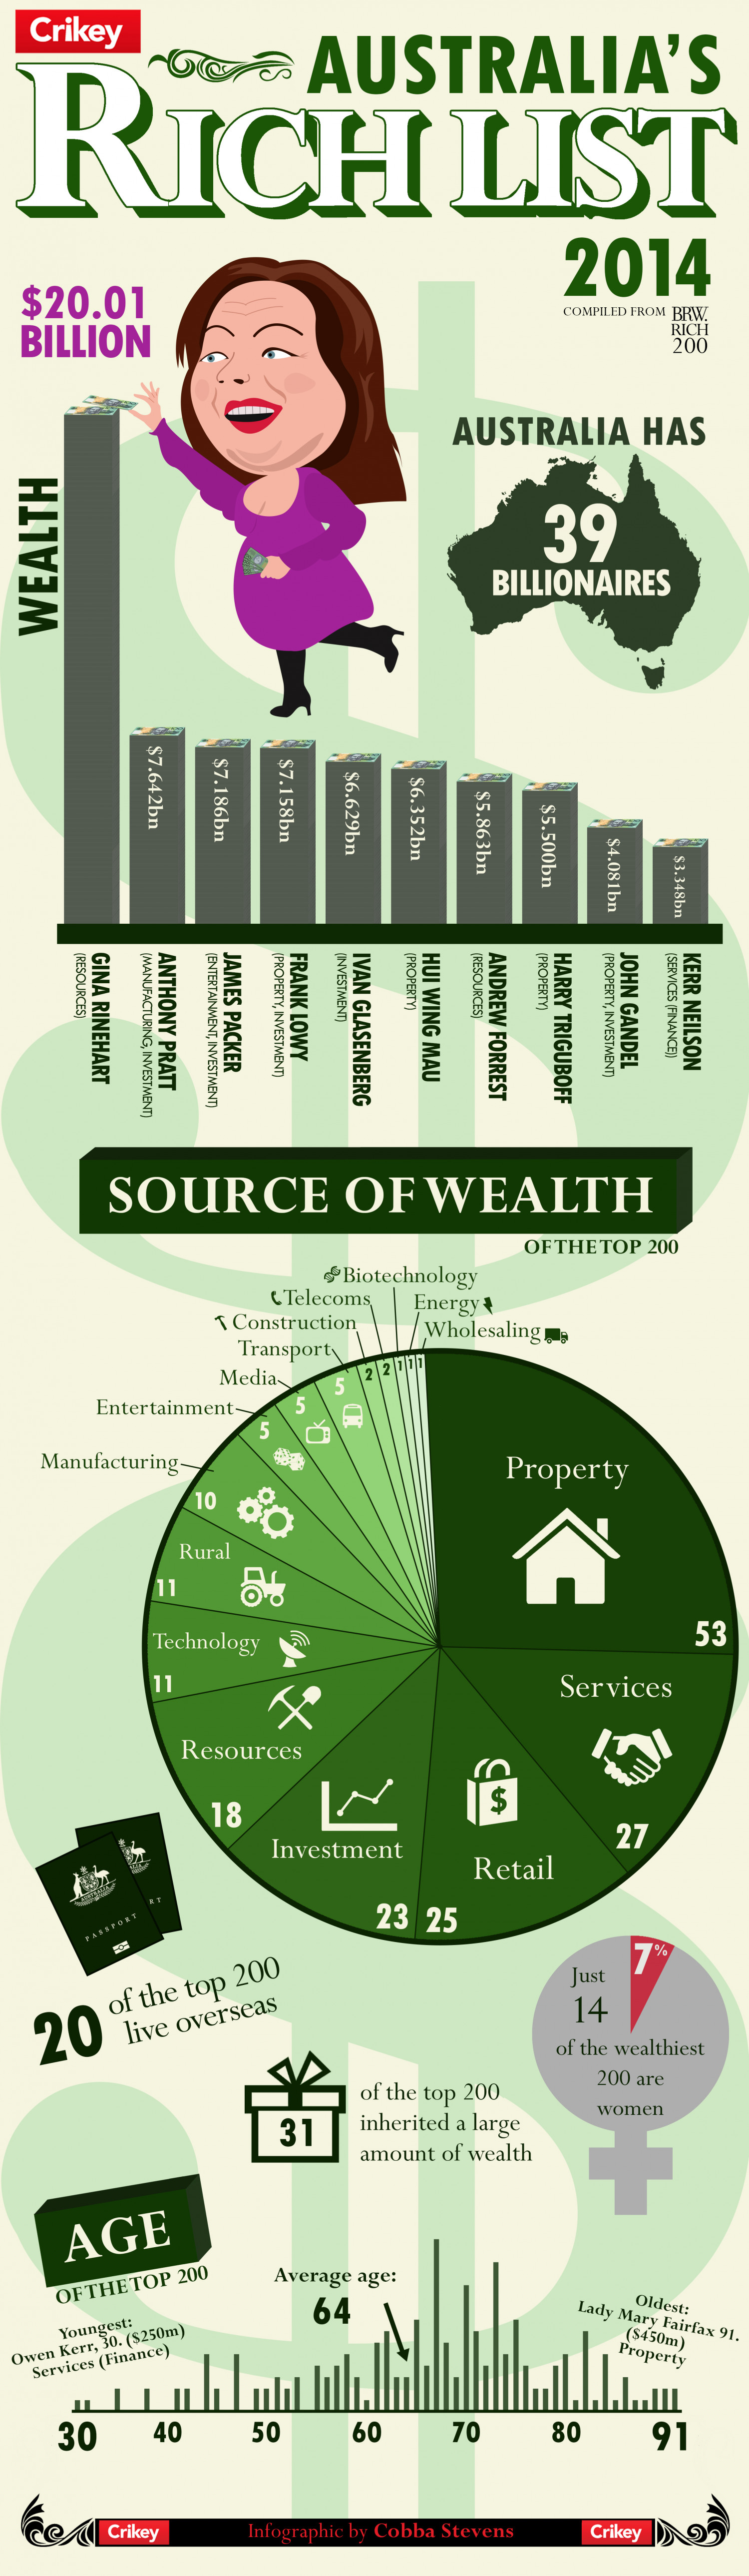 Australia's Rich List Infographic